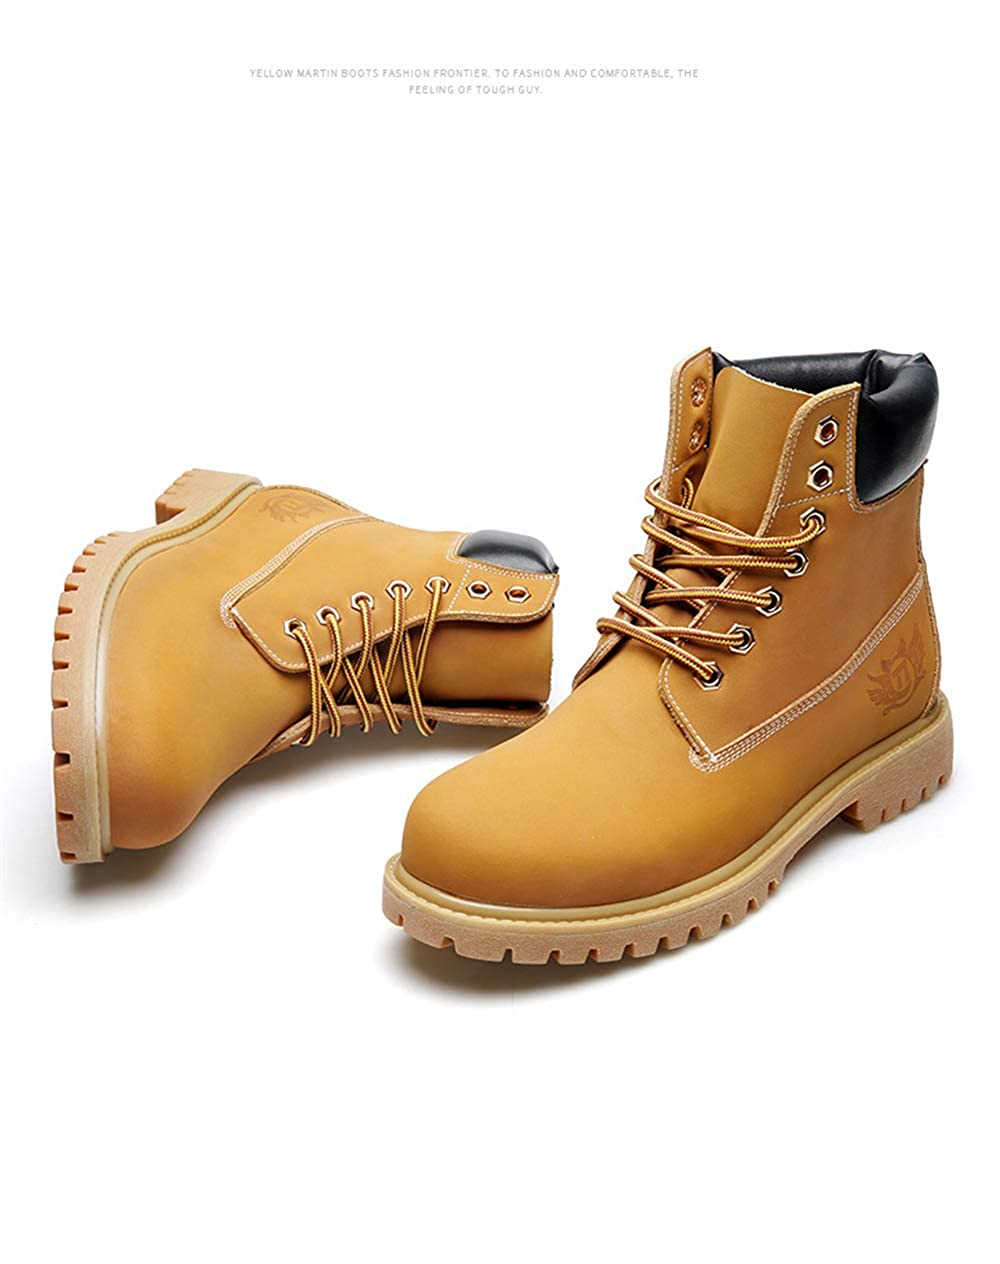 Super frist Mens Casual Fashion Work Boots Waterproof wear-Resistant Non-Slip Martin Boots